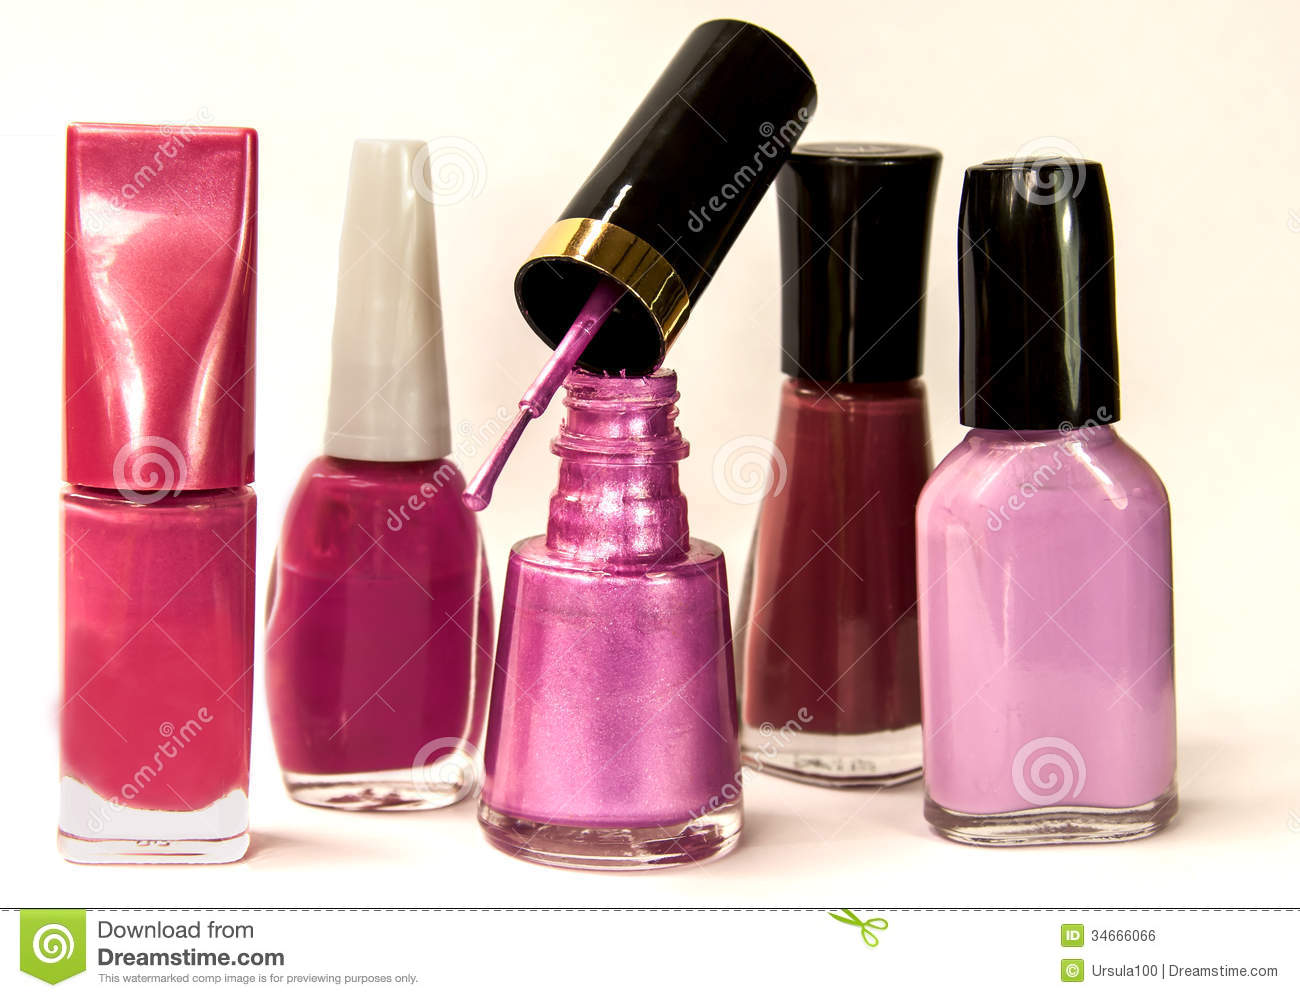 Pink Nail Polish Bottles Royalty Free Stock Image - Image: 34666066 Nail Polish Bottles Clipart